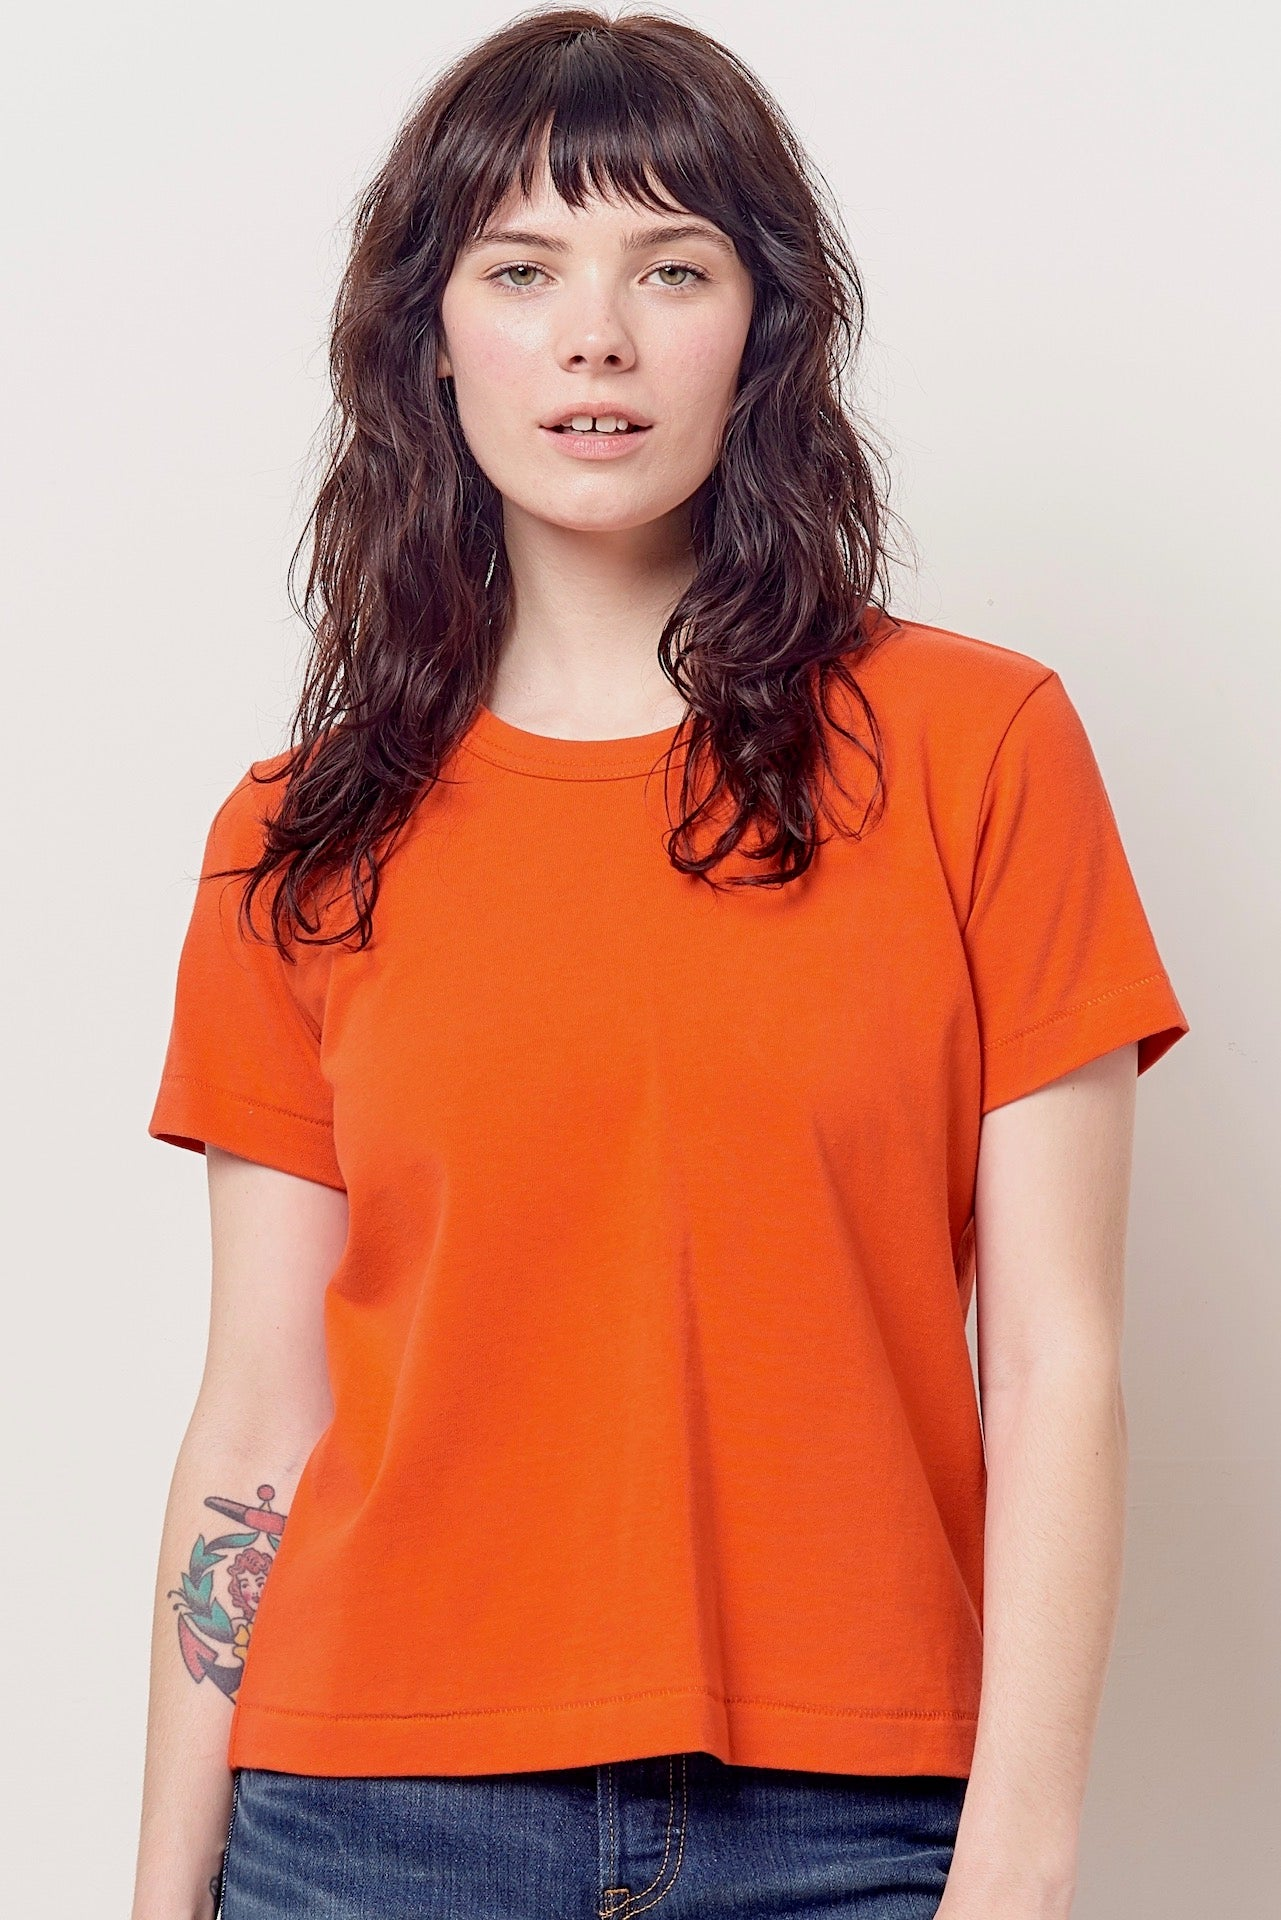 MOLLY Crew Tee- Jersey